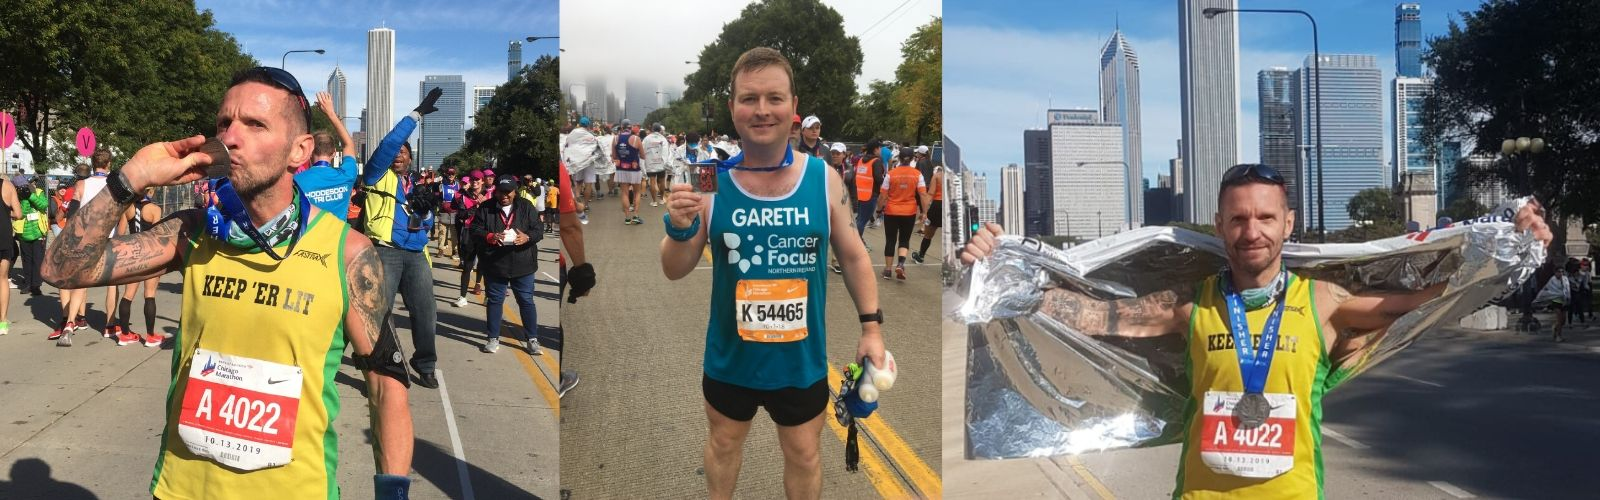 Chicago Marathon – 10 October 2021